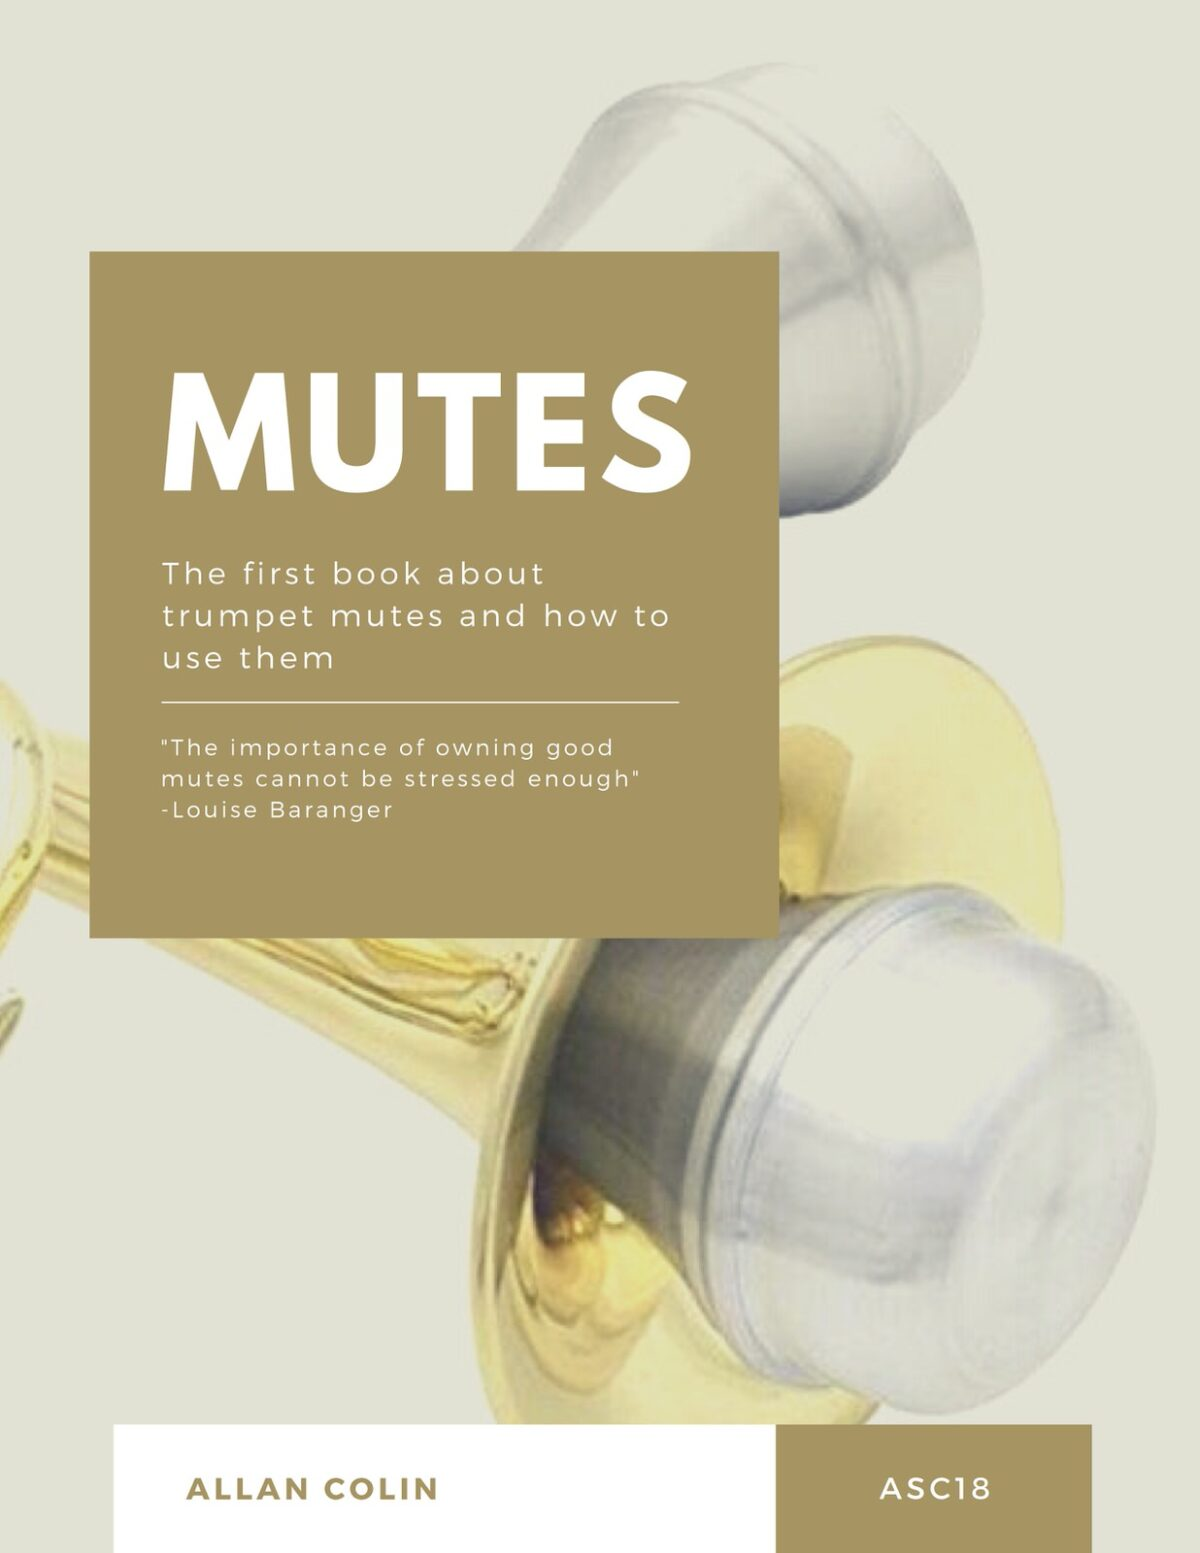 Colin, The First Book About Trumpet Mutes and How to Use Them-p01